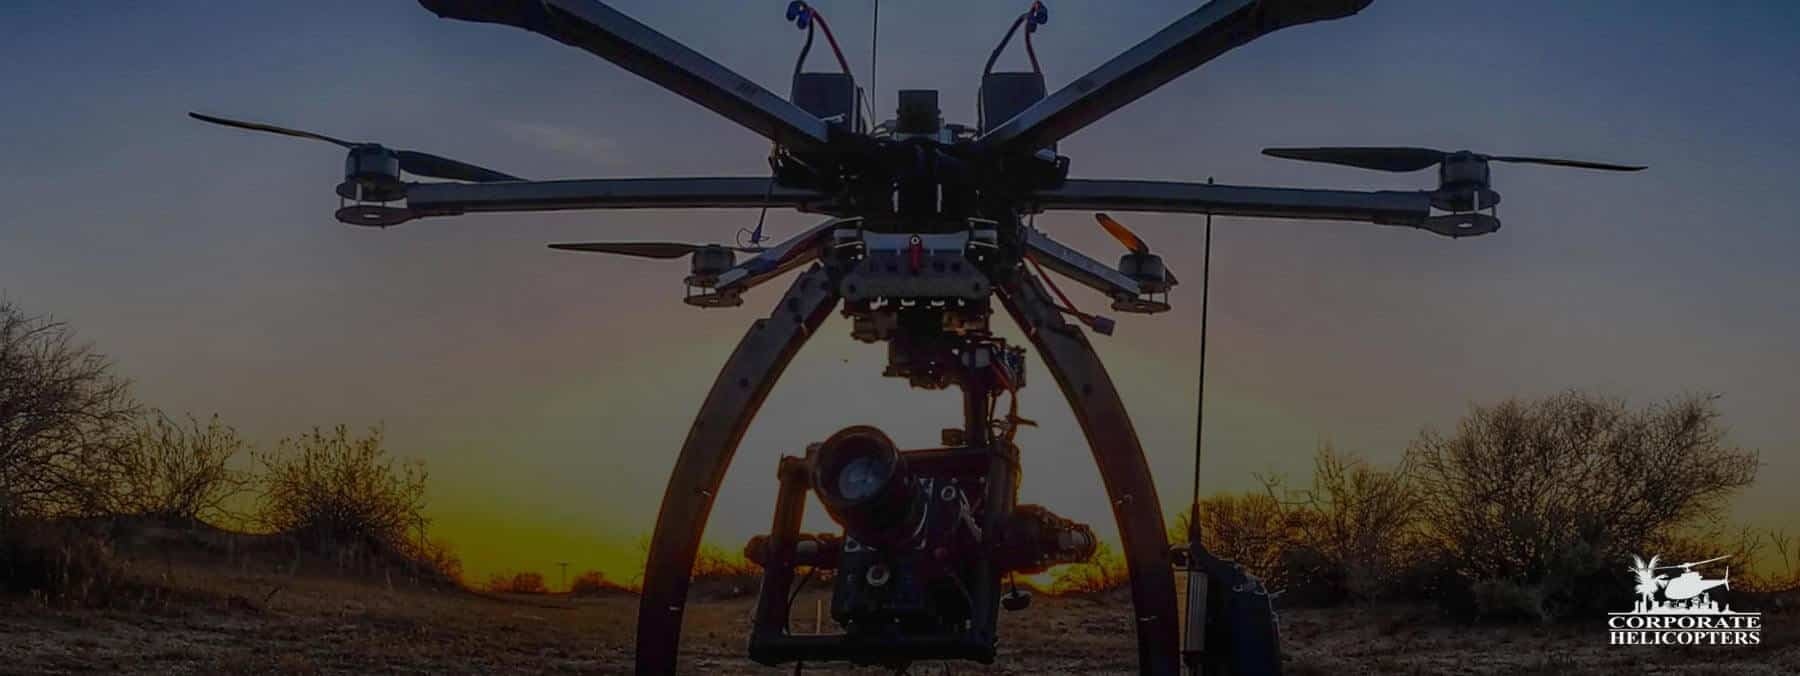 Full-service aerial cinematography by drone & helicopter.